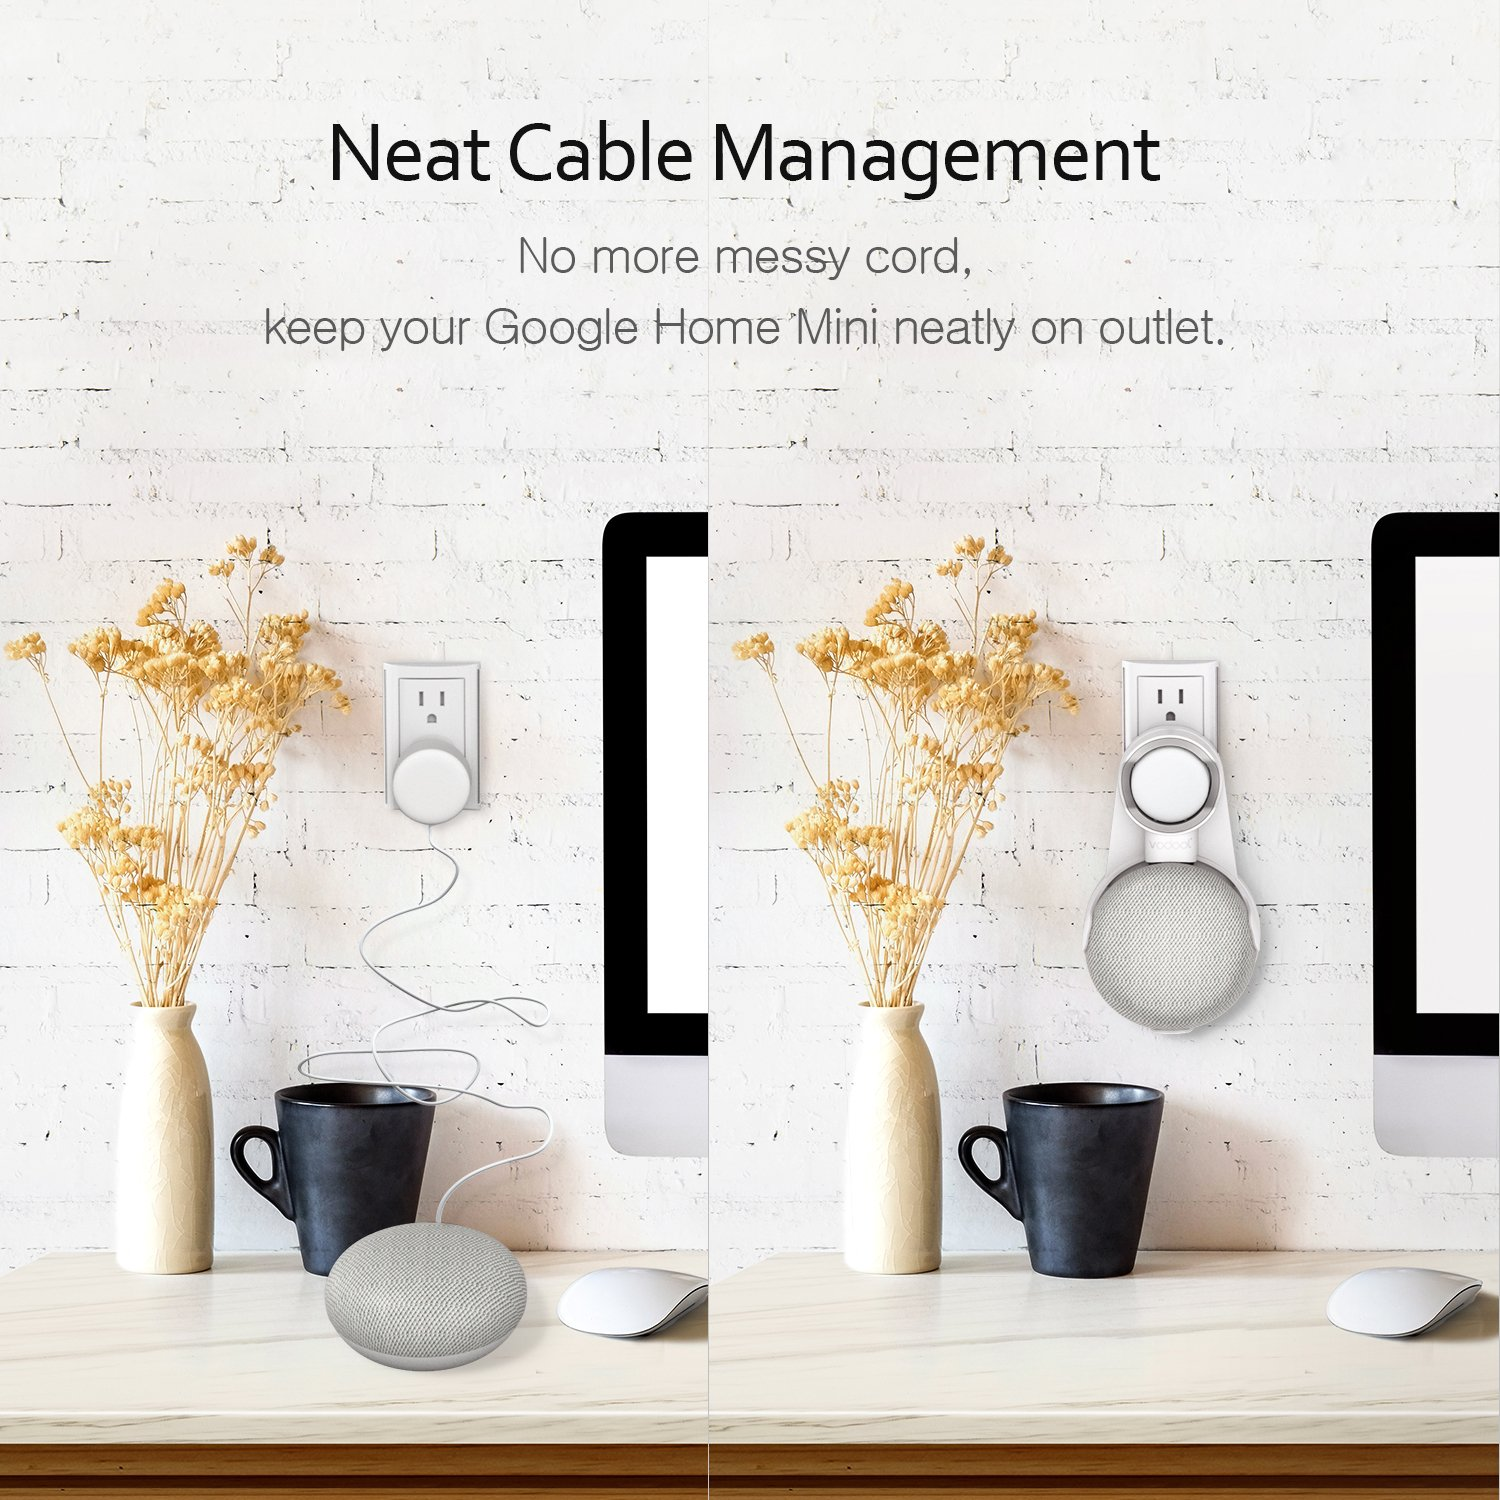 Vodool Outlet Wall Mount for Google Home Mini, a Space-Saving Solution for Your Voice Assistant, Compact Holder Hanger in Kitchen Bathroom Bedroom (White)